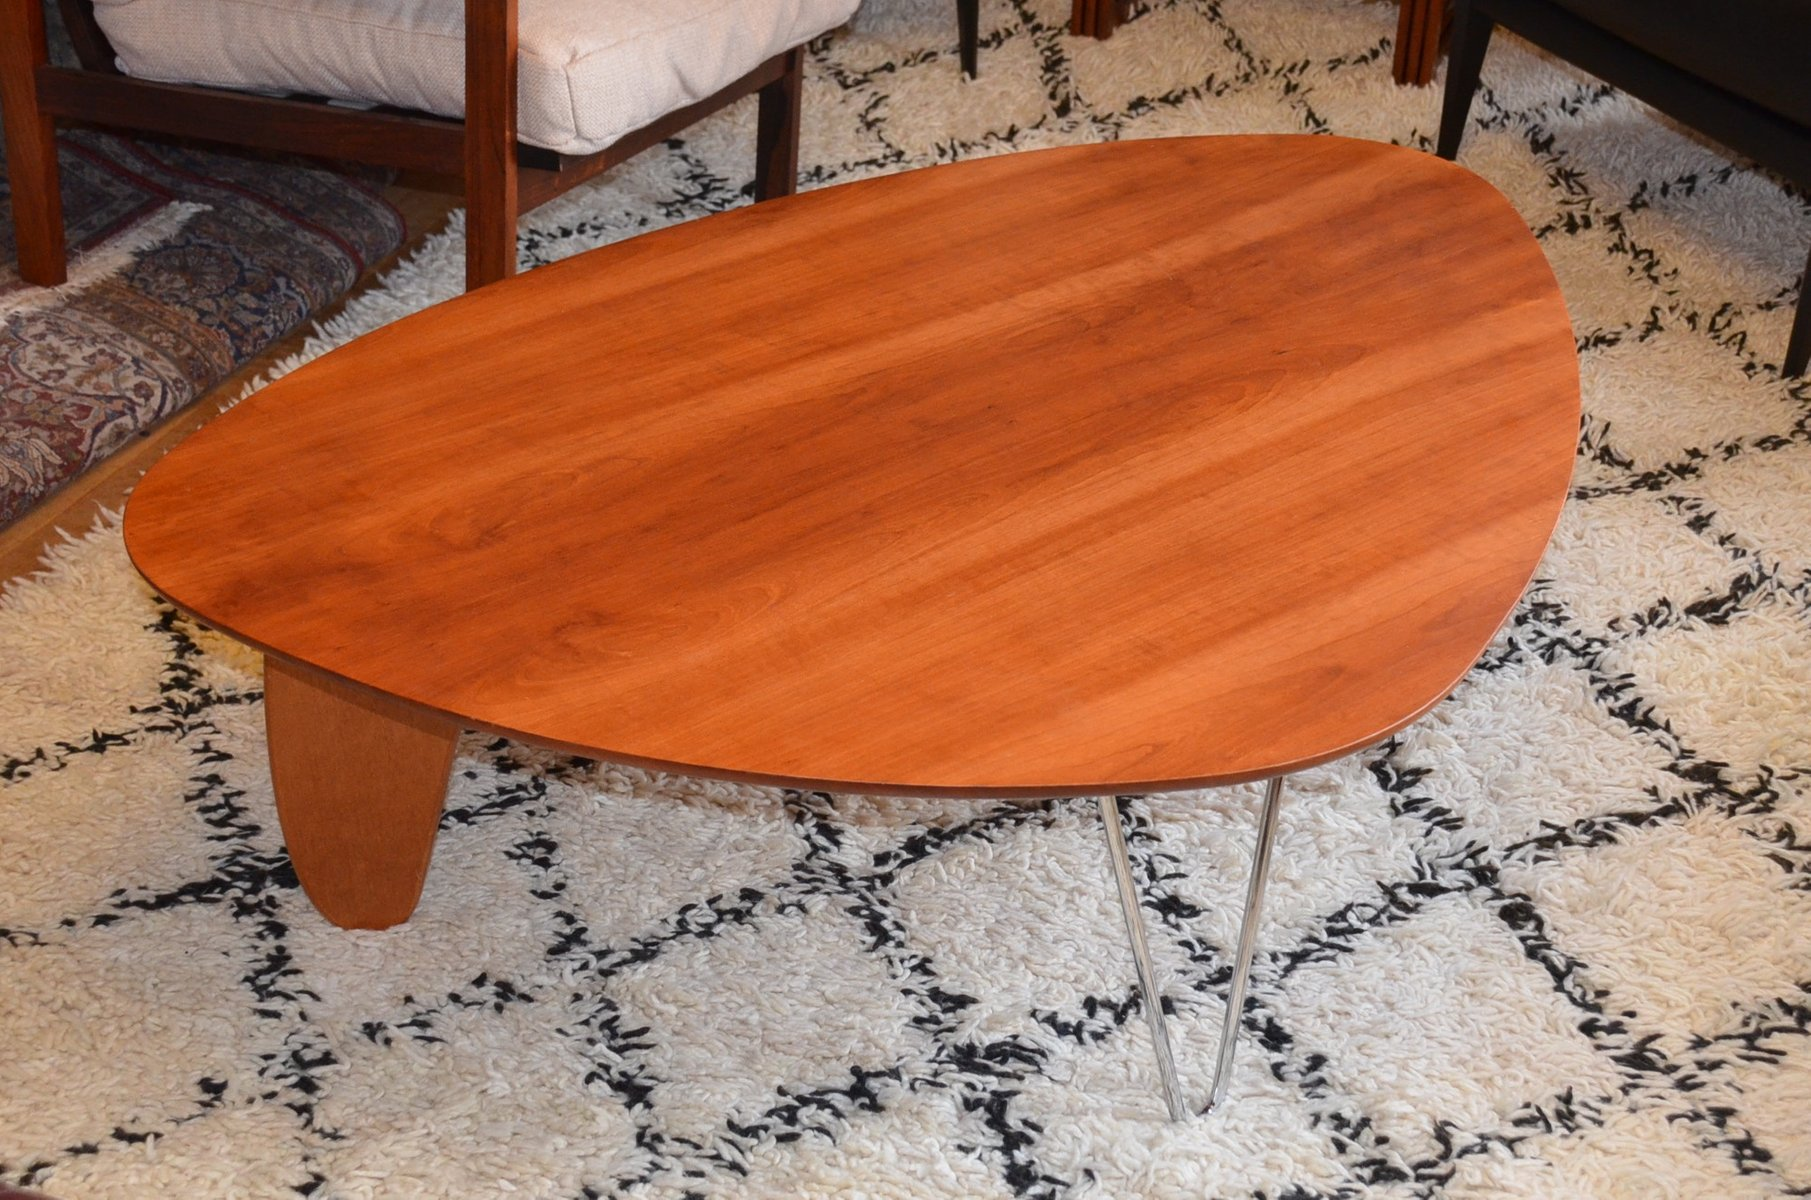 Vintage rudder coffee table by isamu noguchi for herman miller for sale at pamono Herman miller noguchi coffee table